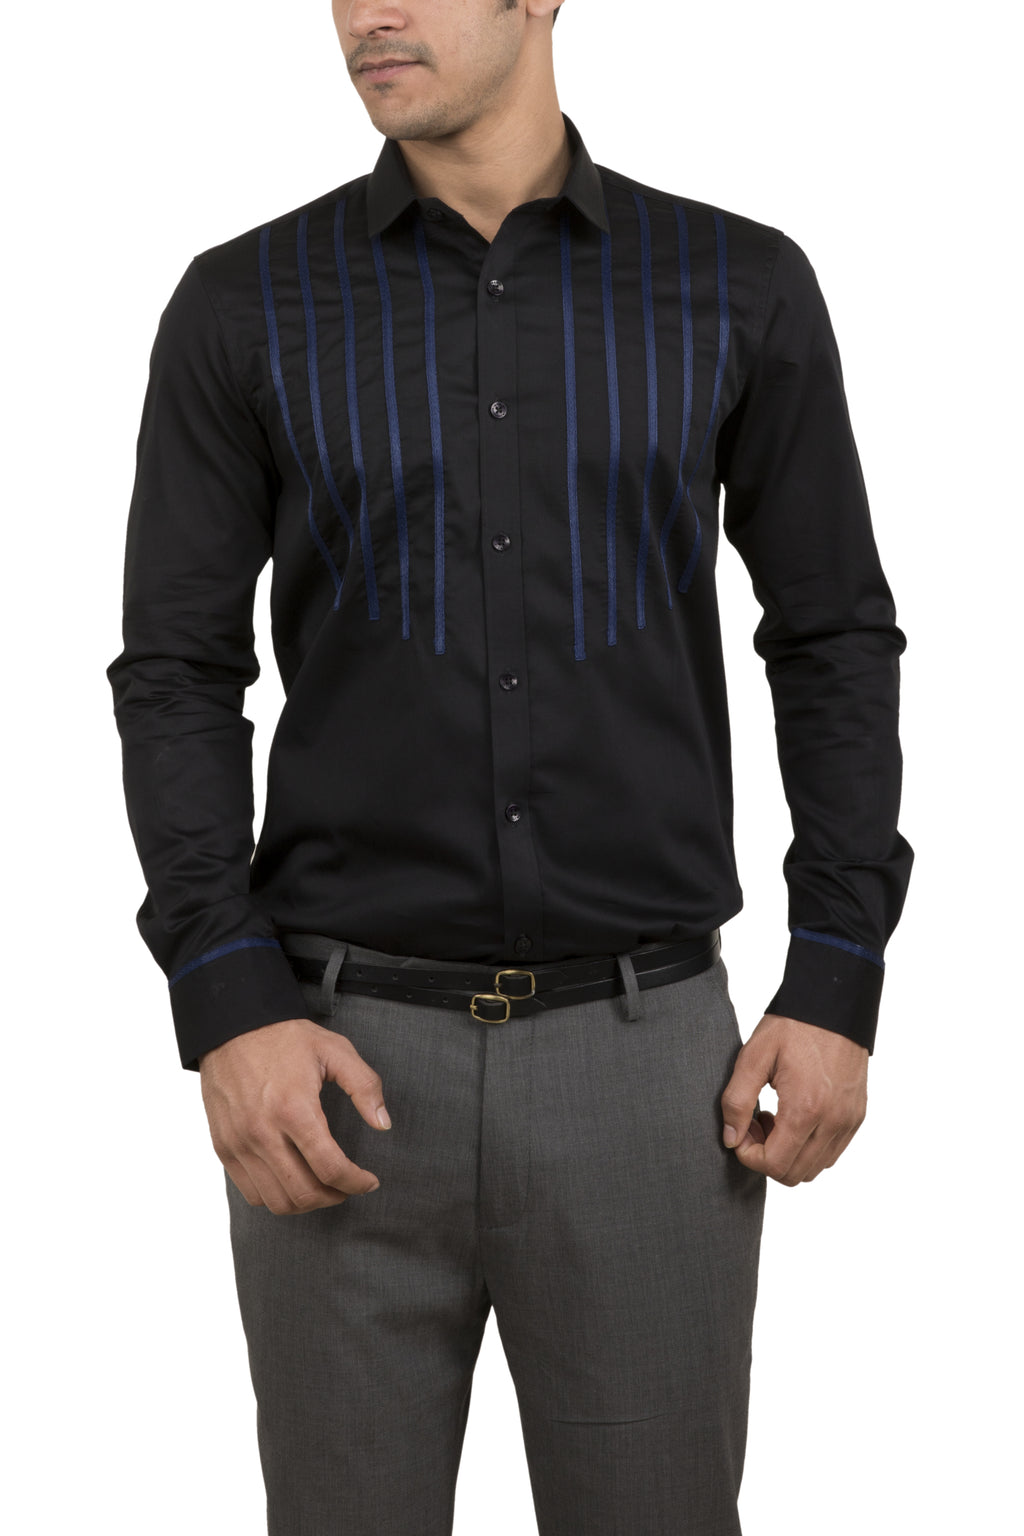 Order Online Men's apparel from alchemy.